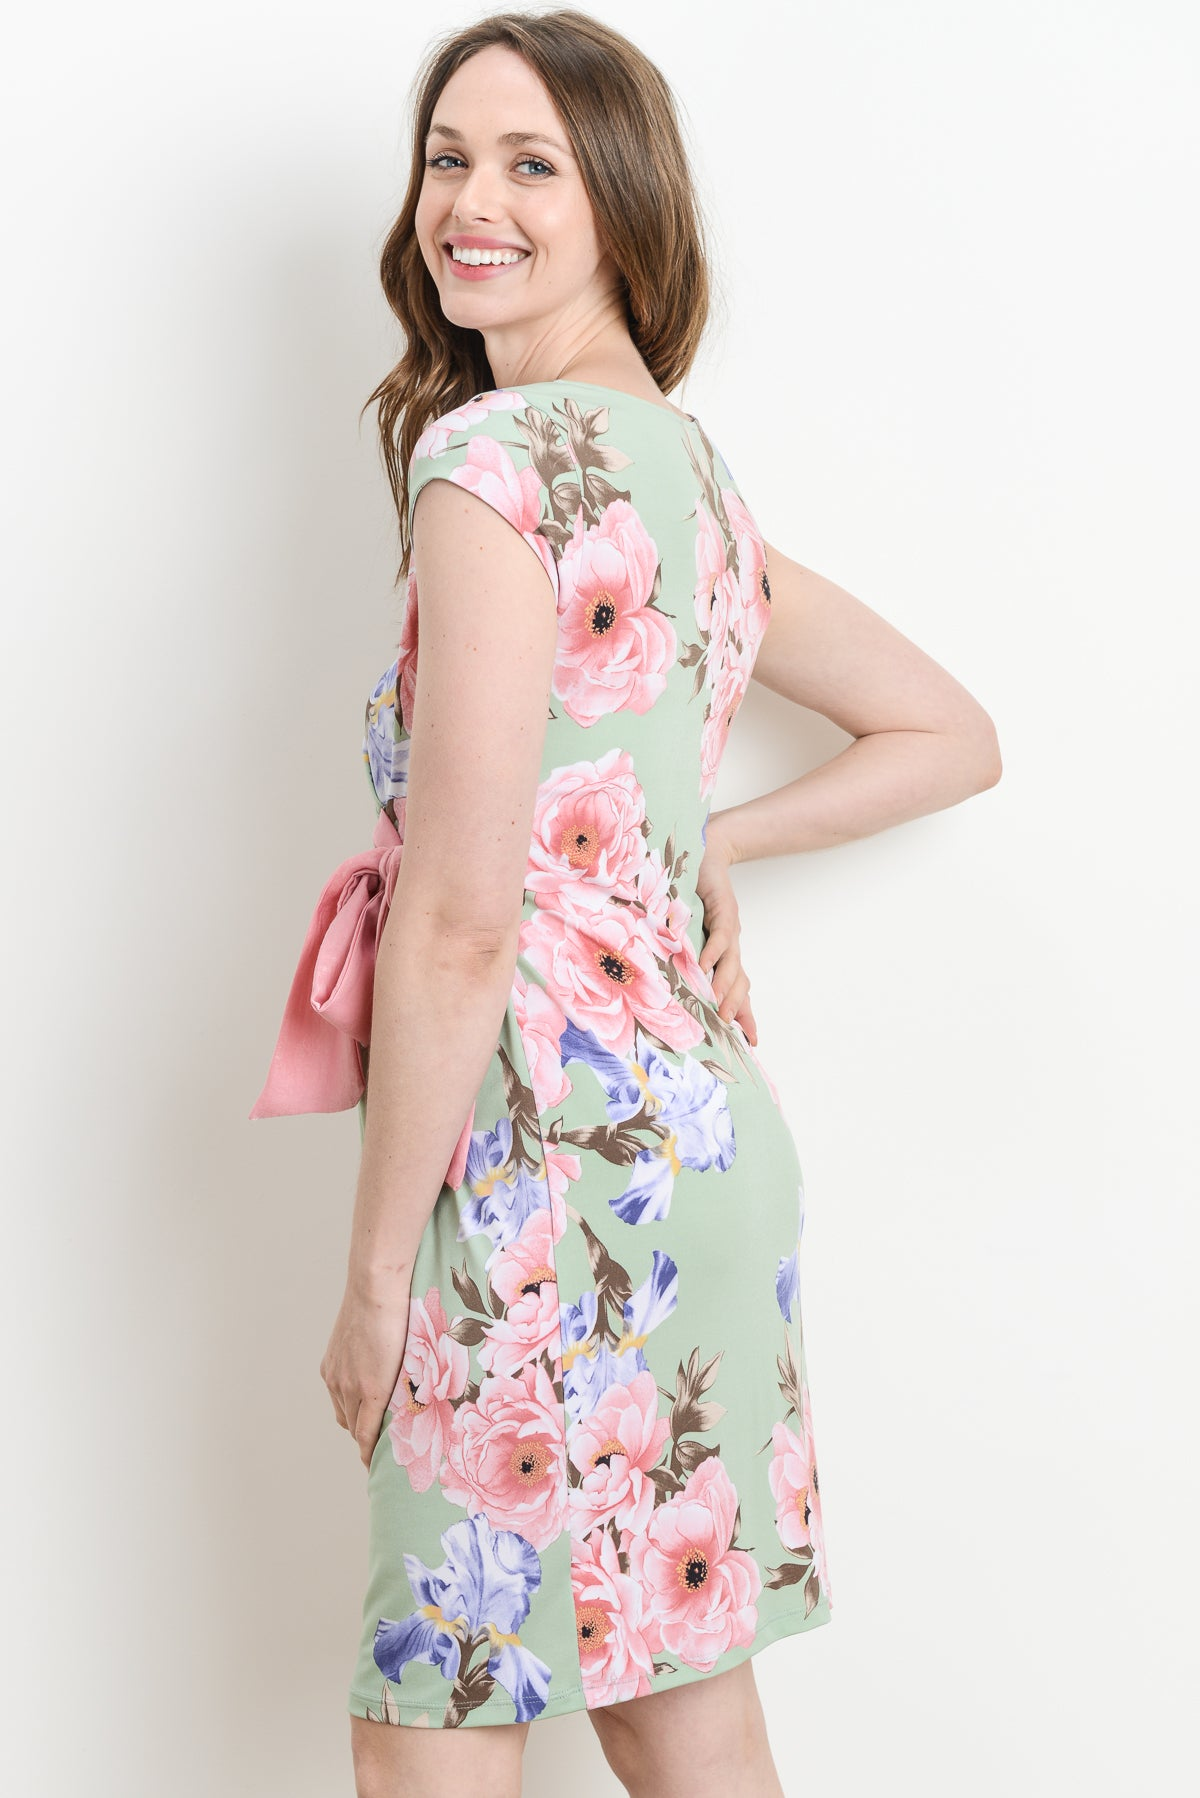 885e9aeef6ae9 ... Pastel Floral Boat Neck with Ribbon Maternity Dress ...